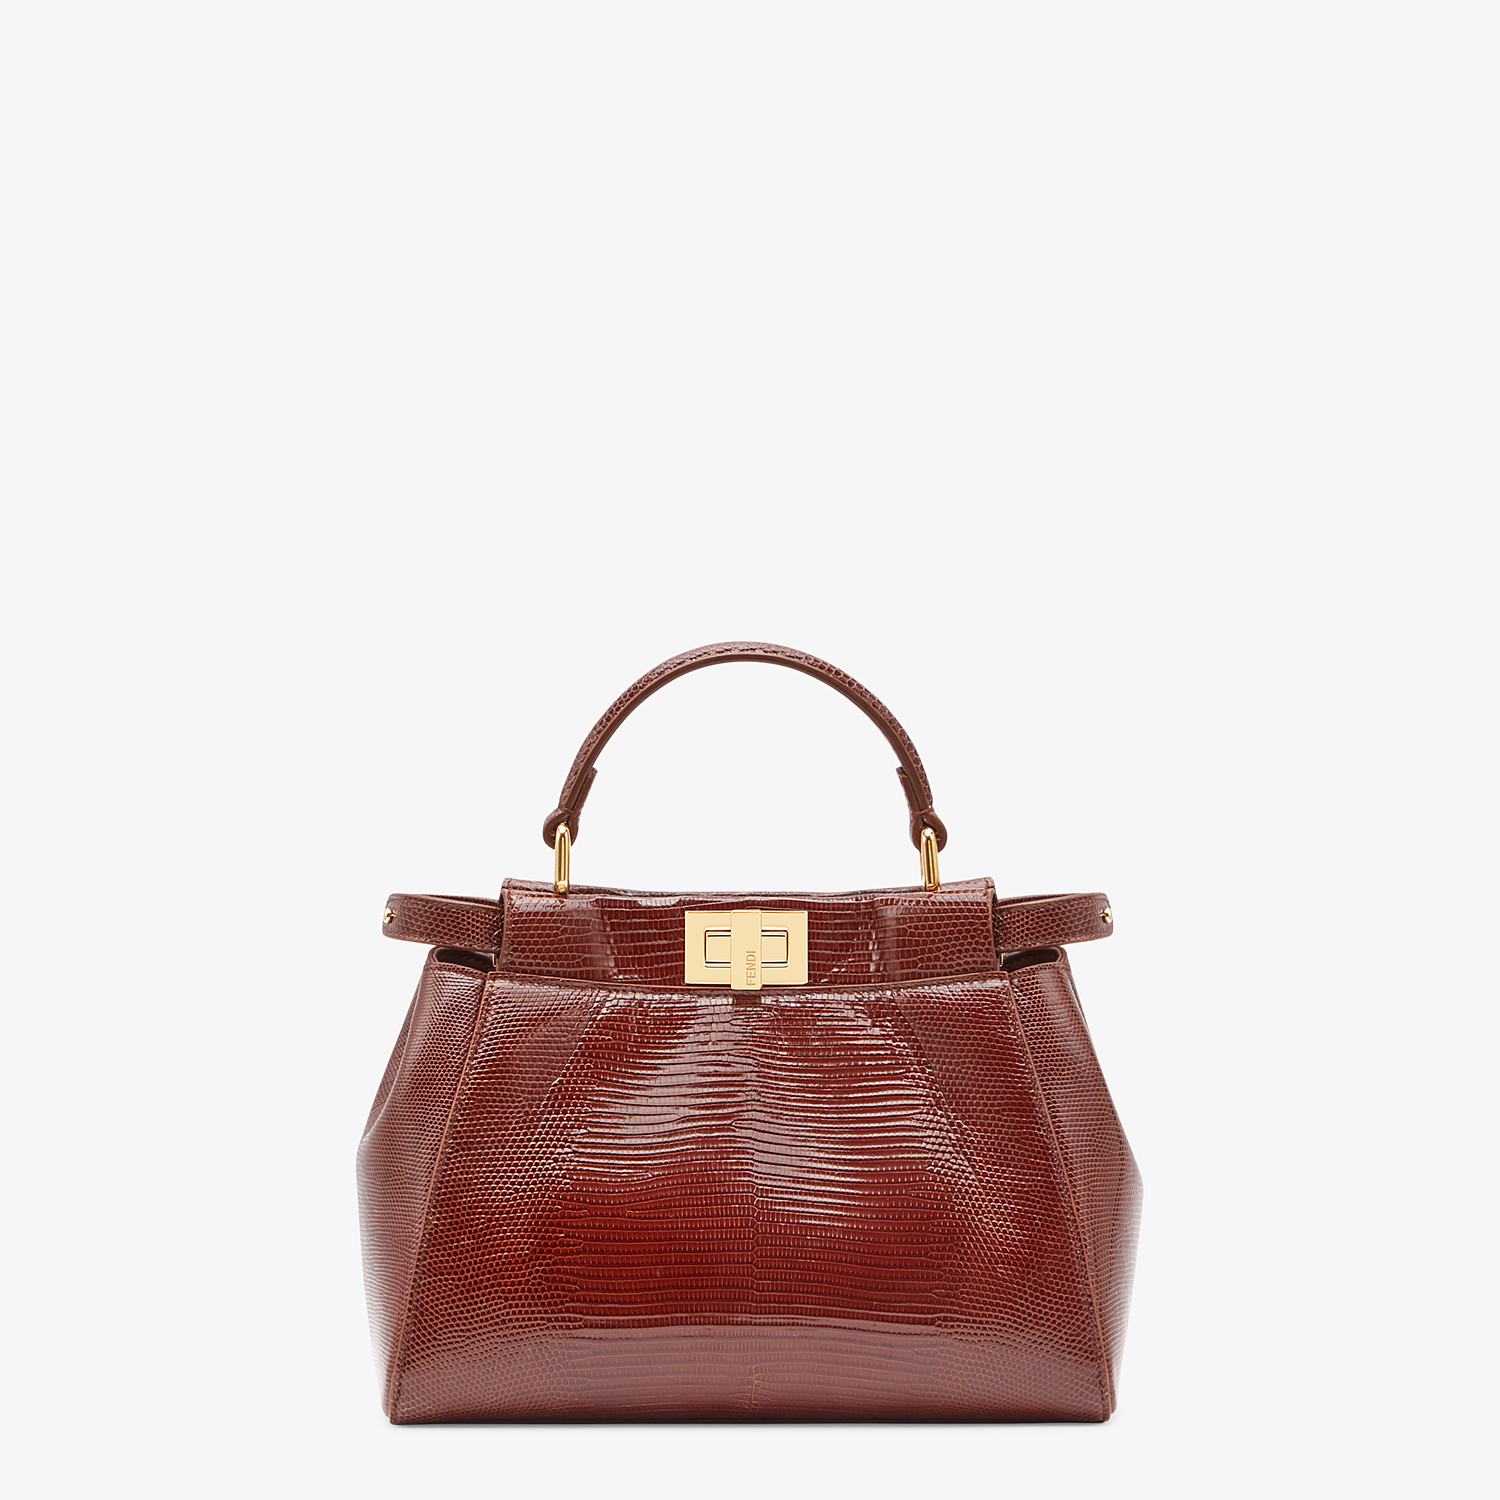 FENDI PEEKABOO ICONIC MINI - Brown lizard bag - view 1 detail